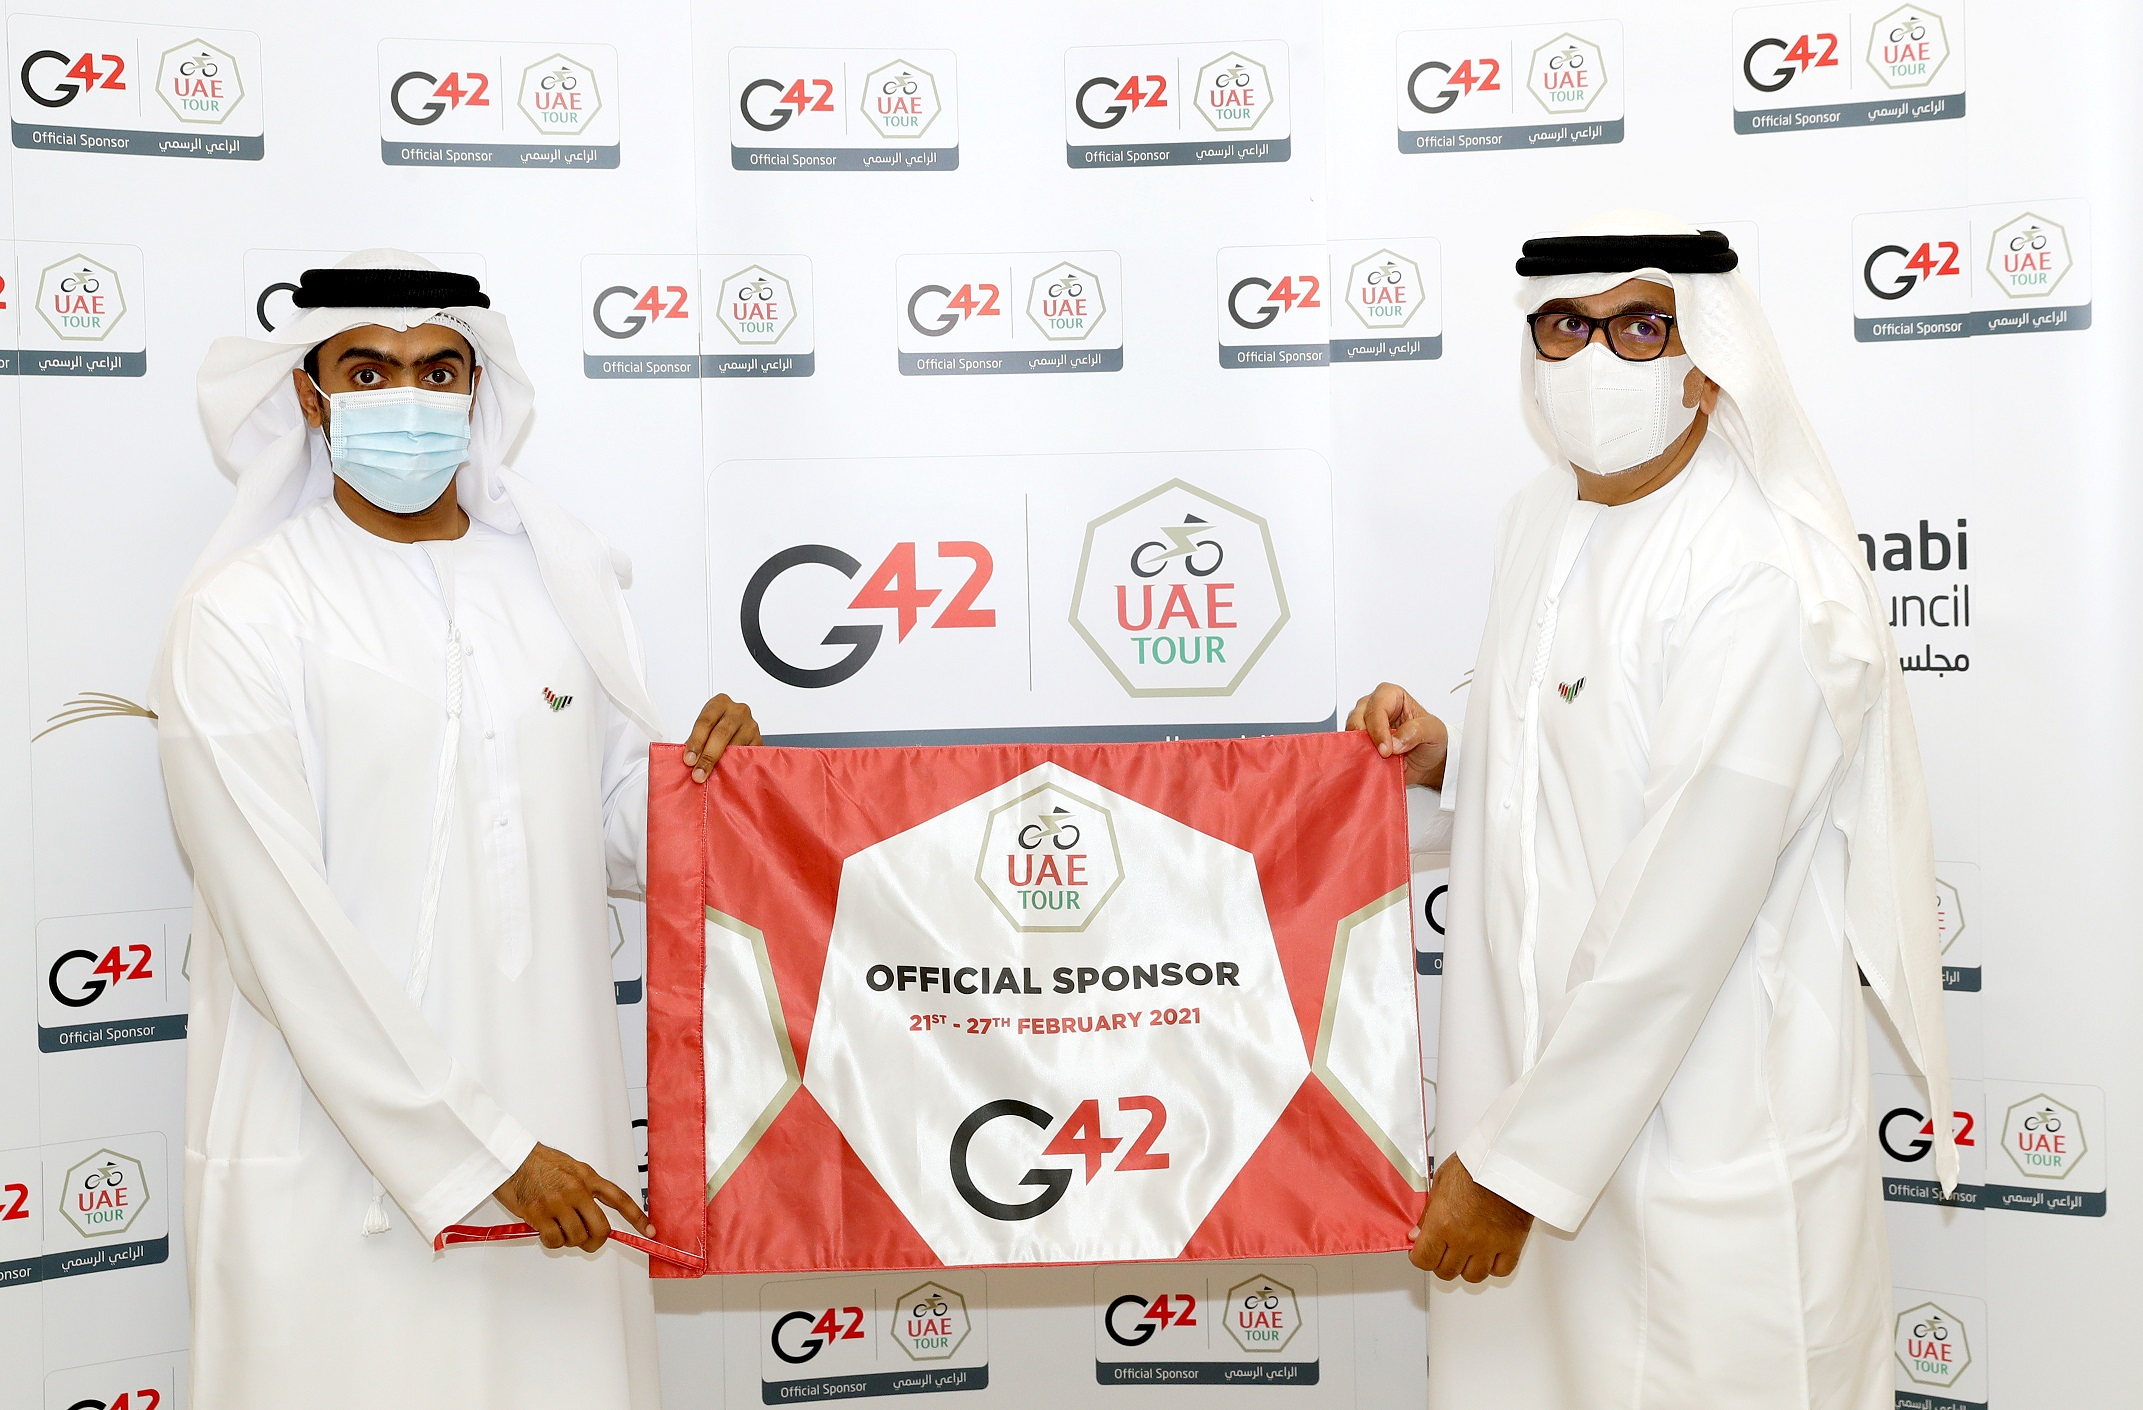 G42 joins as an official partner of the UAE Tour